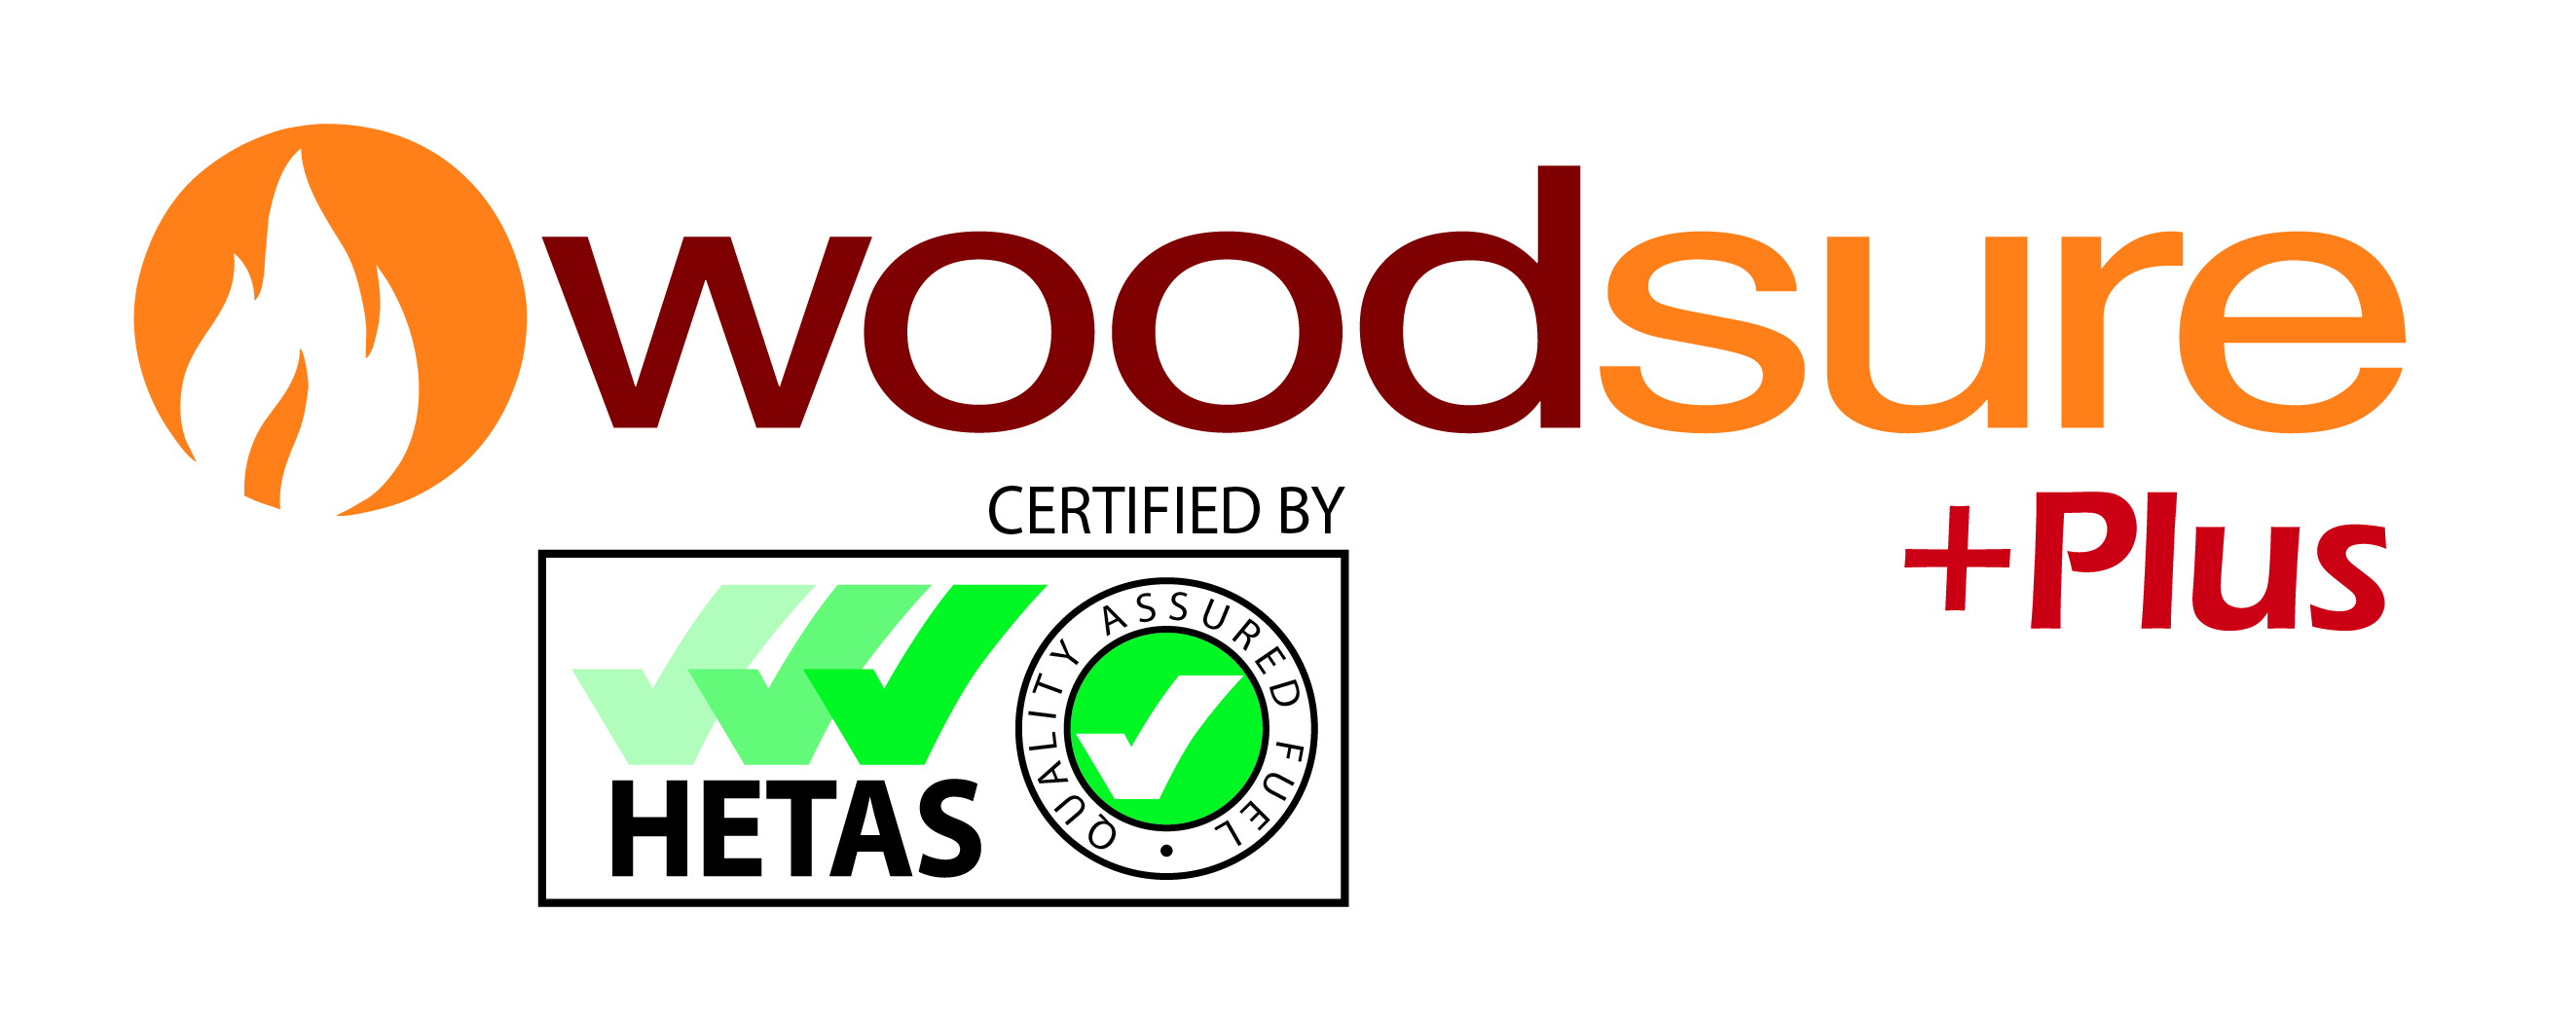 WoodSure Plus - Certified by HETAS